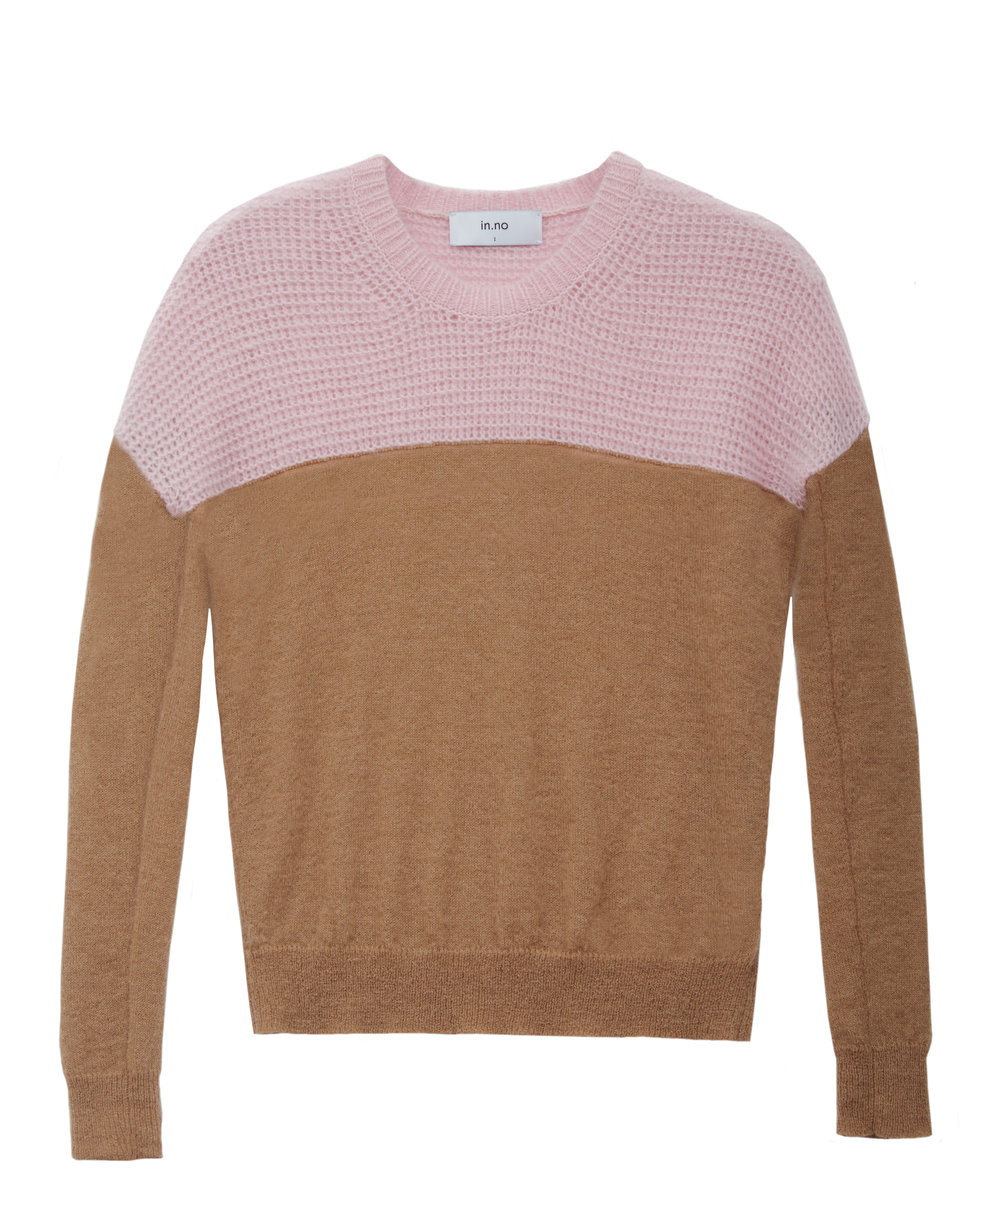 in.no Edition 1.0 pink sand jumper